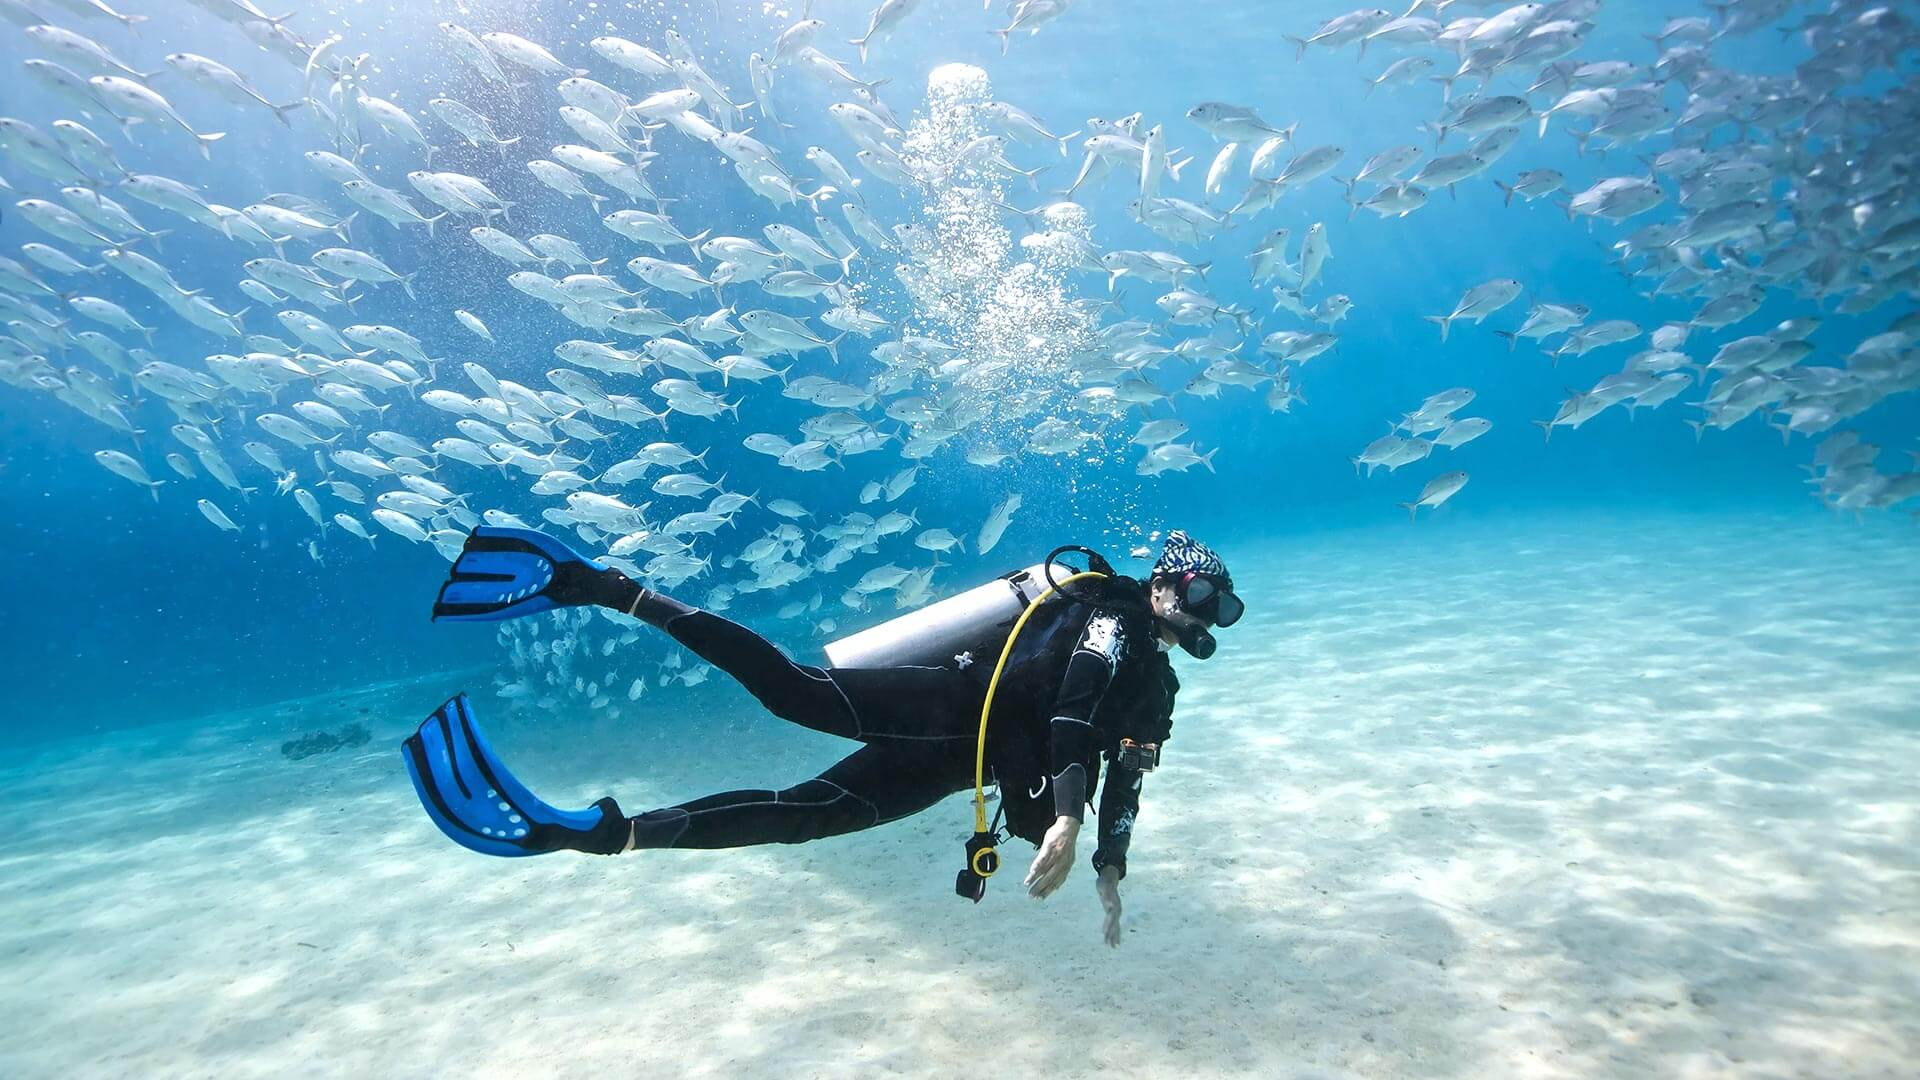 10 Top Scuba Diving Spots In South East Asia